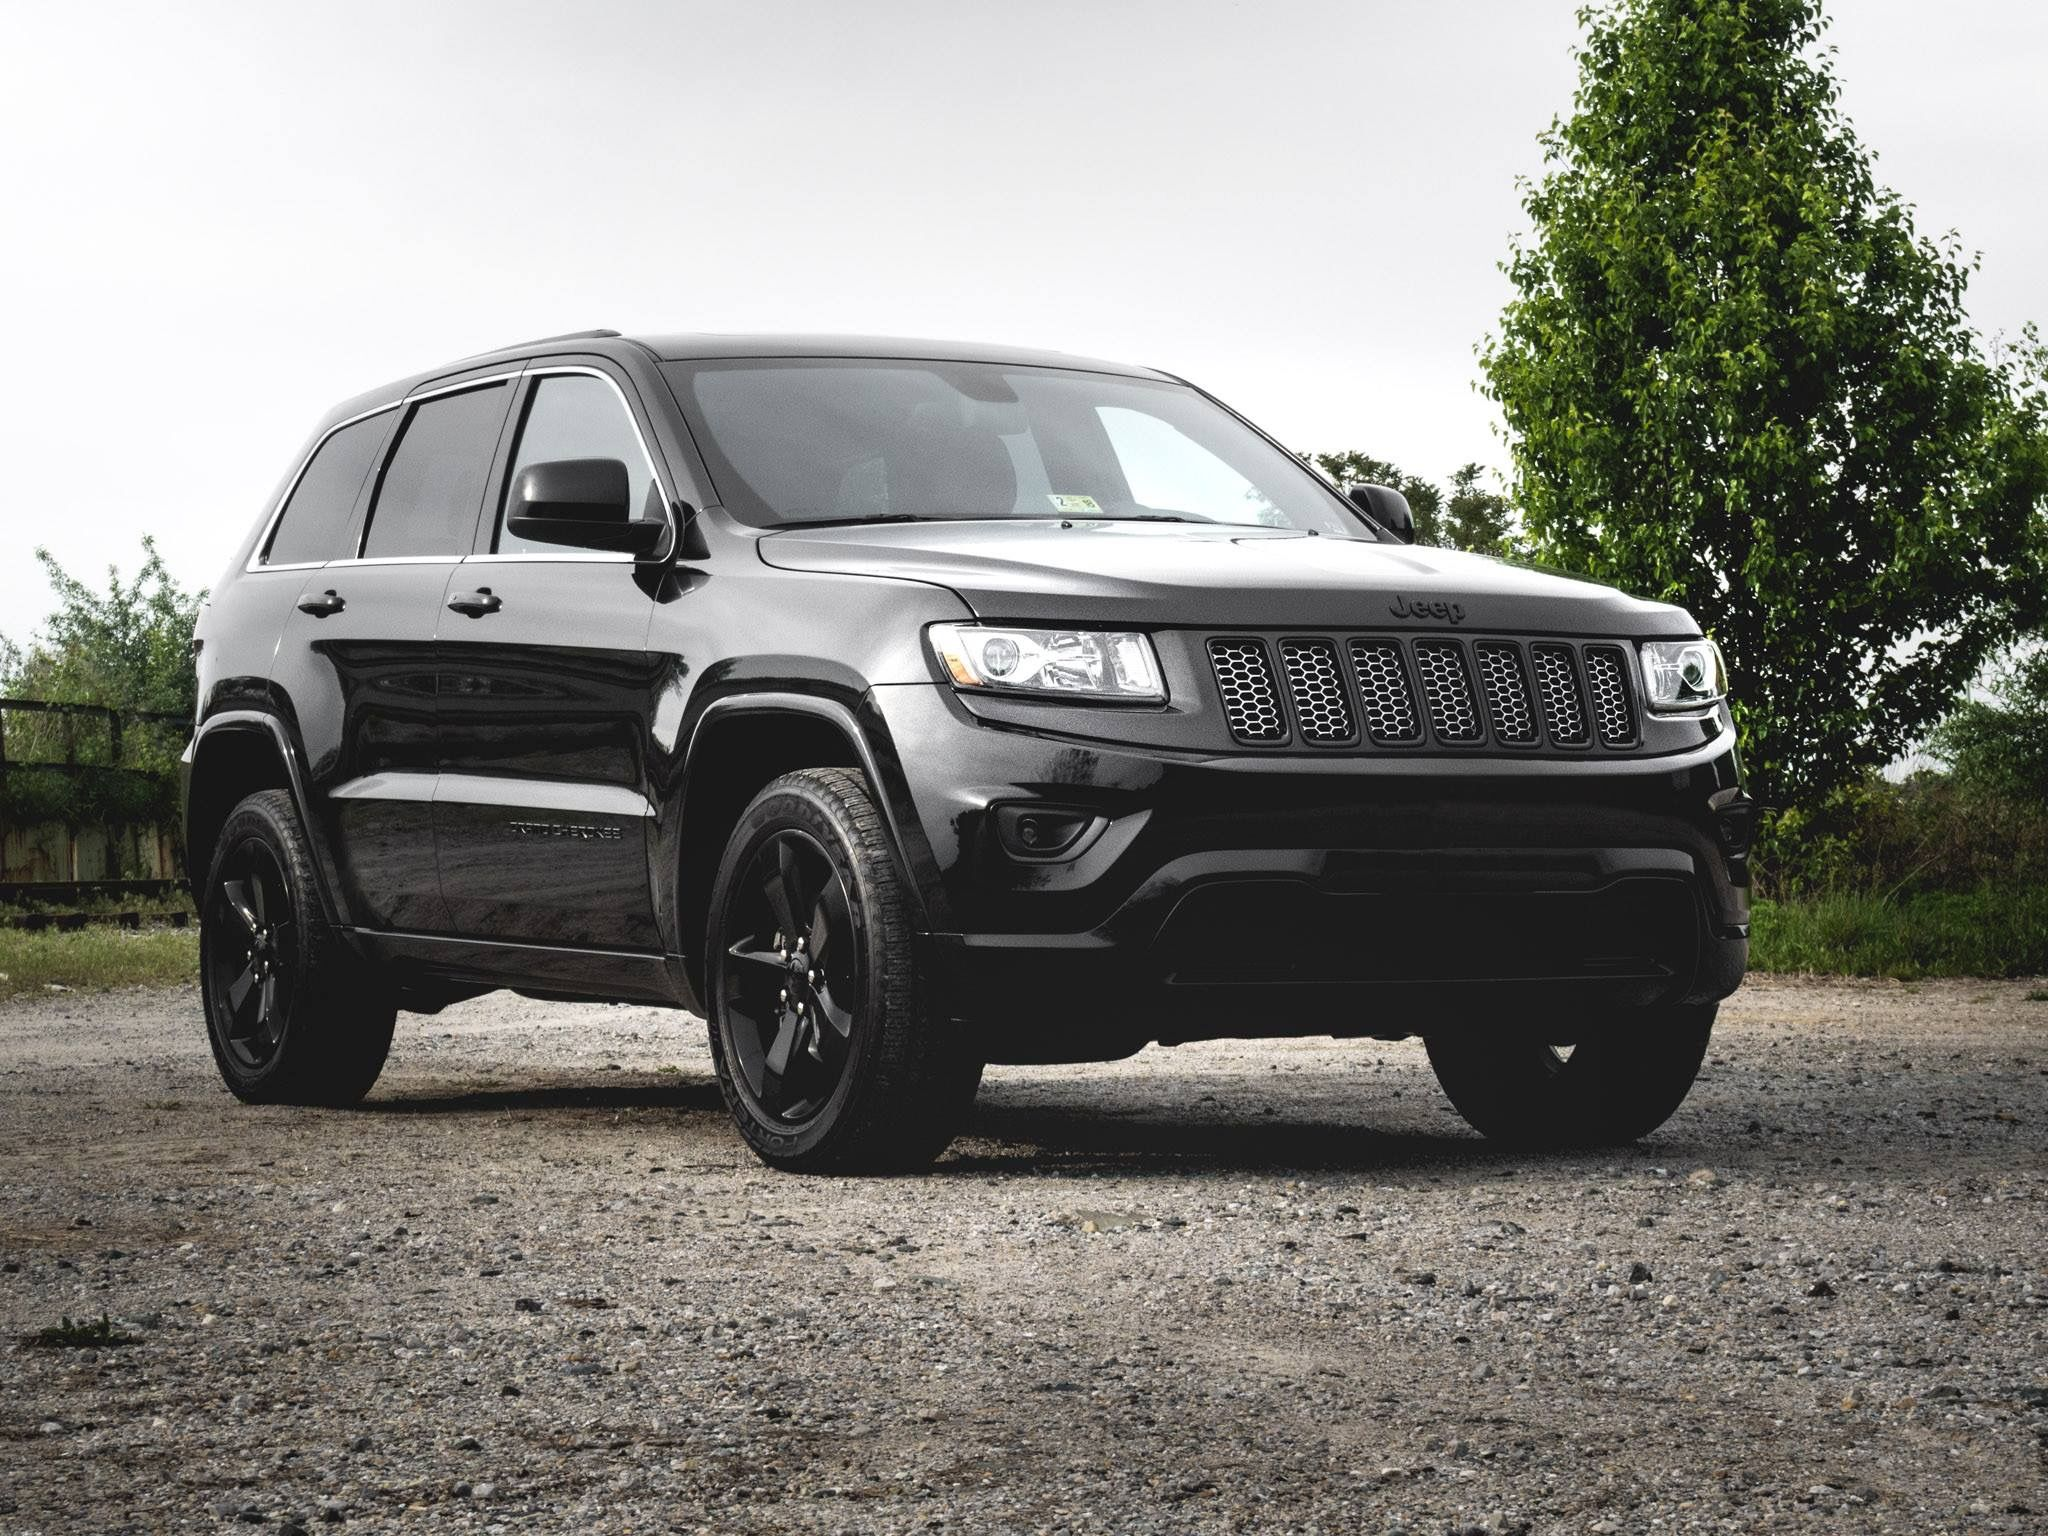 2015 Jeep Grand Cherokee 4x4 Altitude All Black Jeep All Black